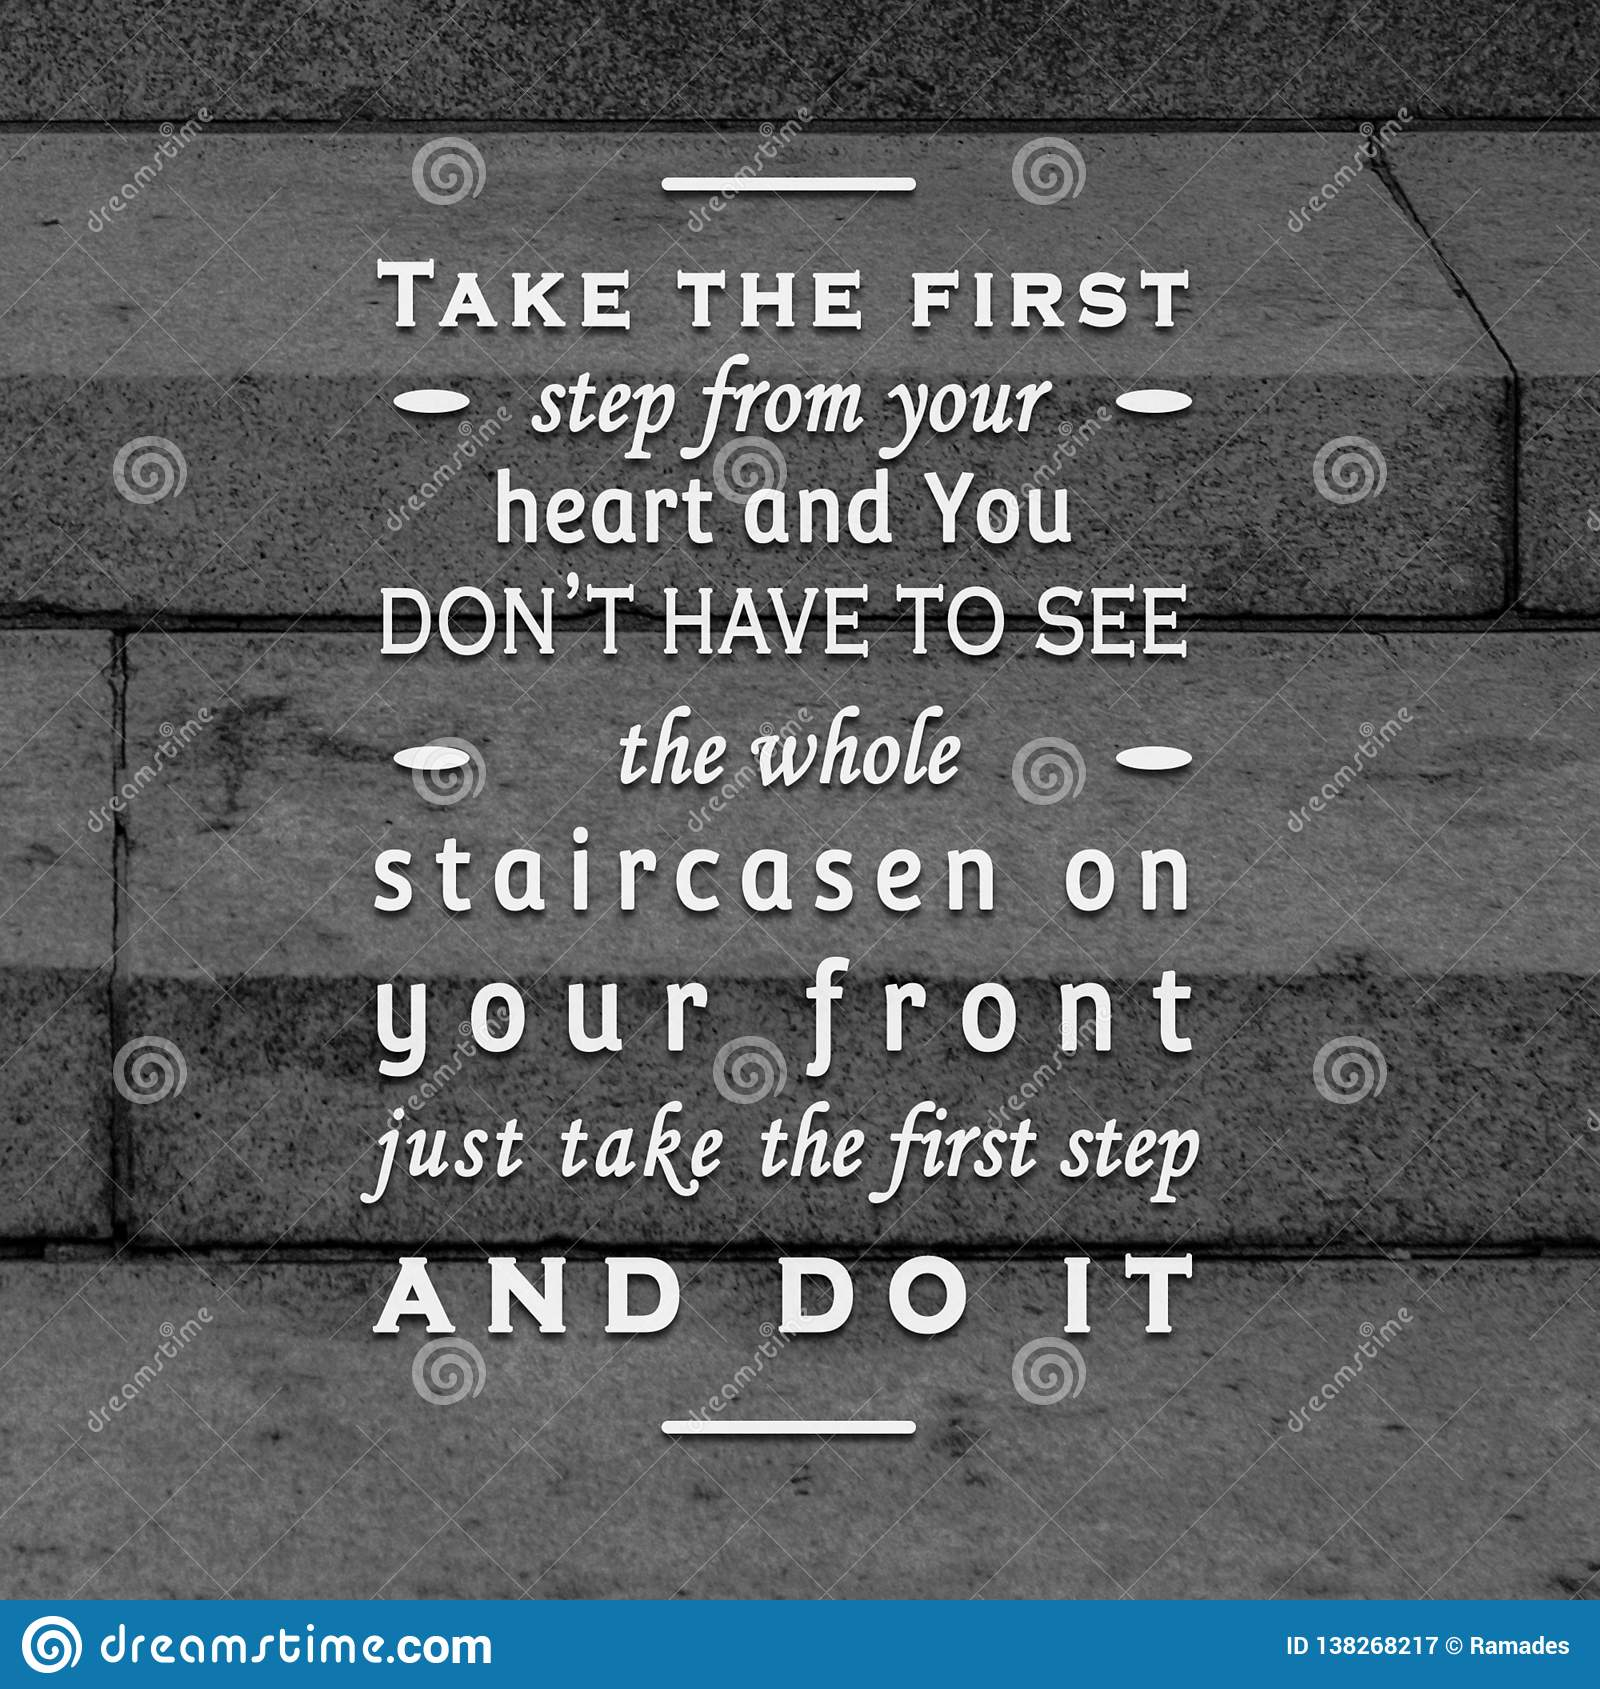 Quotes motivational and inspiring poster stair